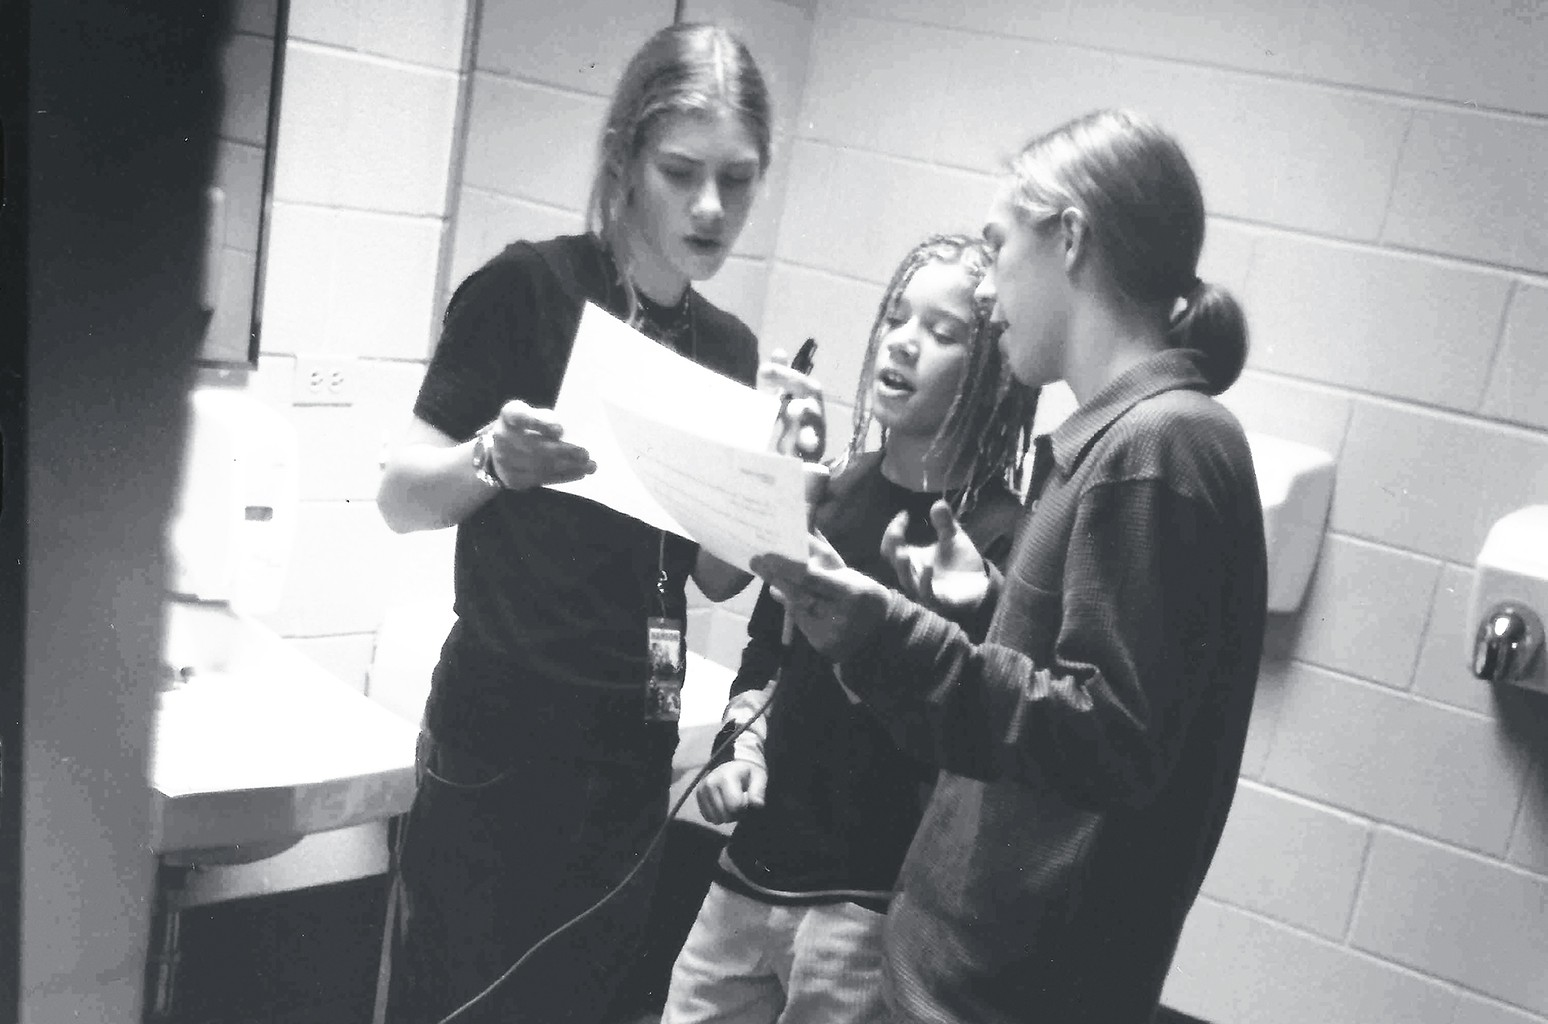 From left: Taylor, Zac and Isaac Hanson backstage in Chicago in 1998.